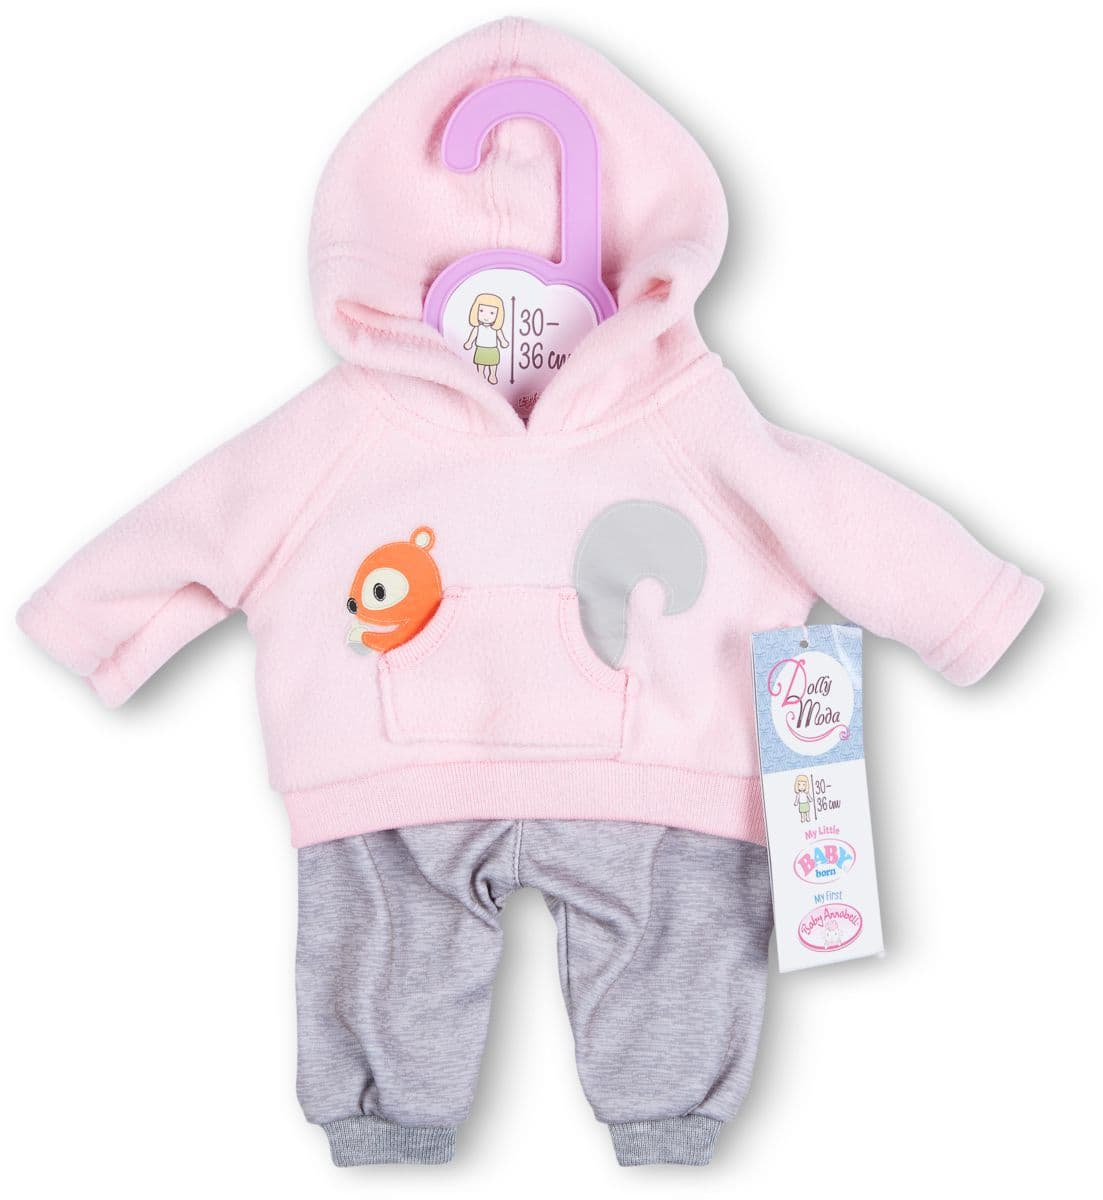 Dolly Moda Sport Outfit pink 30-36cm